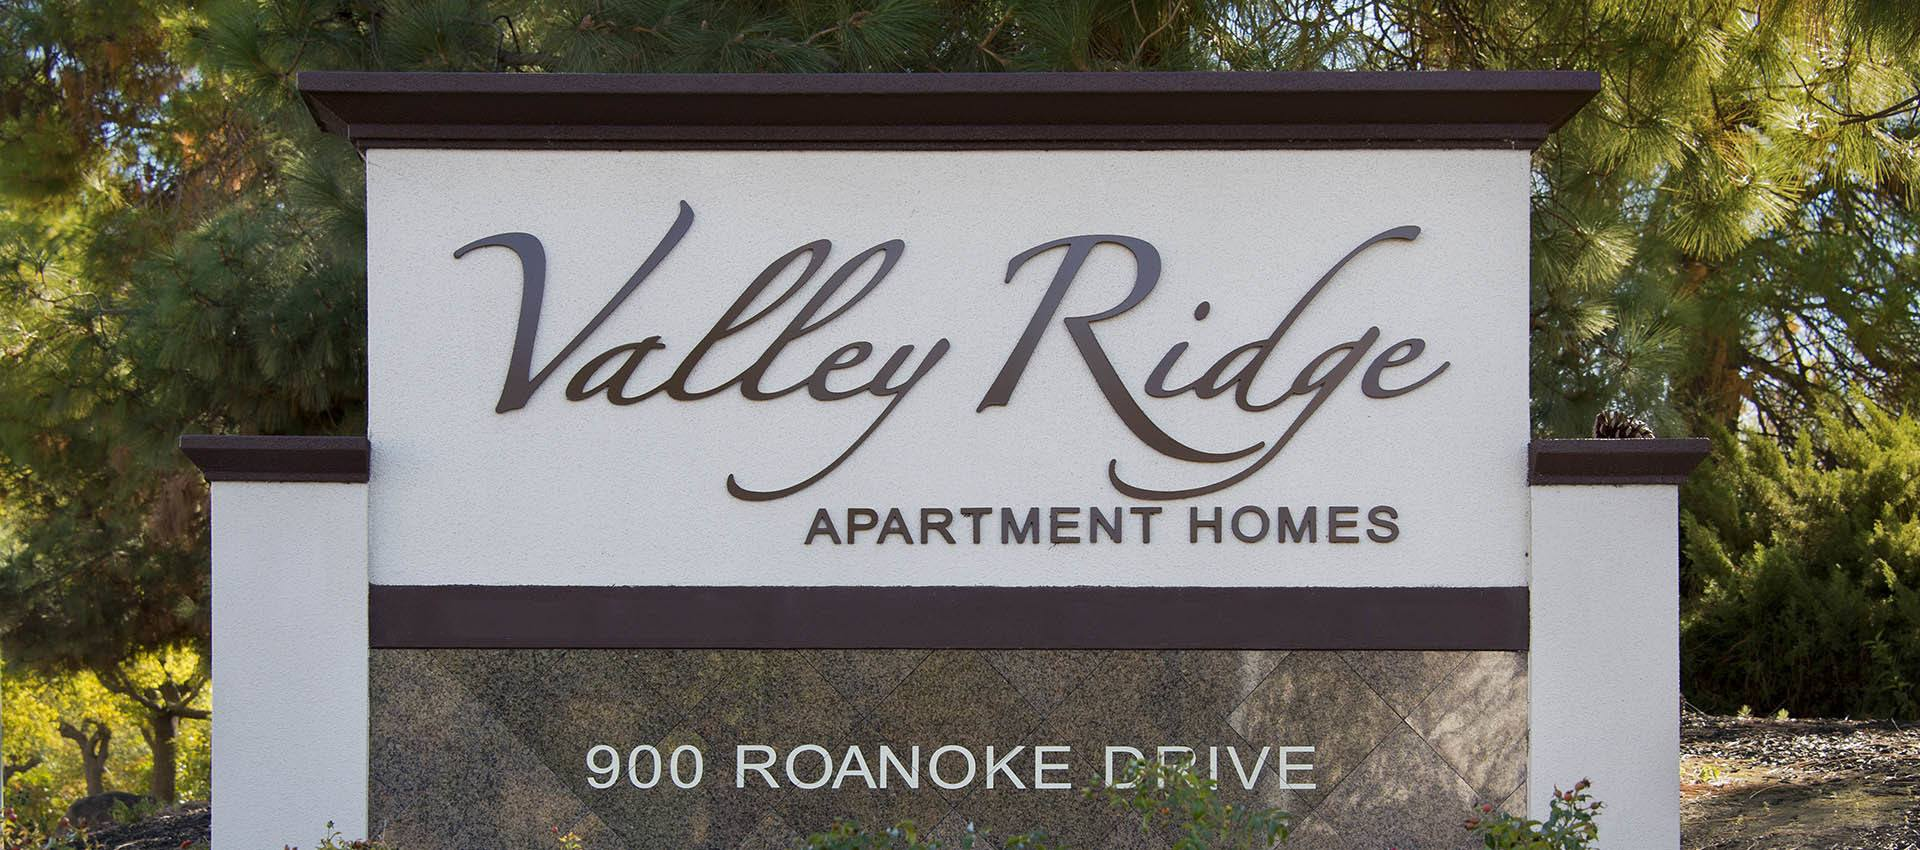 Signage at Valley Ridge Apartment Homes in Martinez, CA